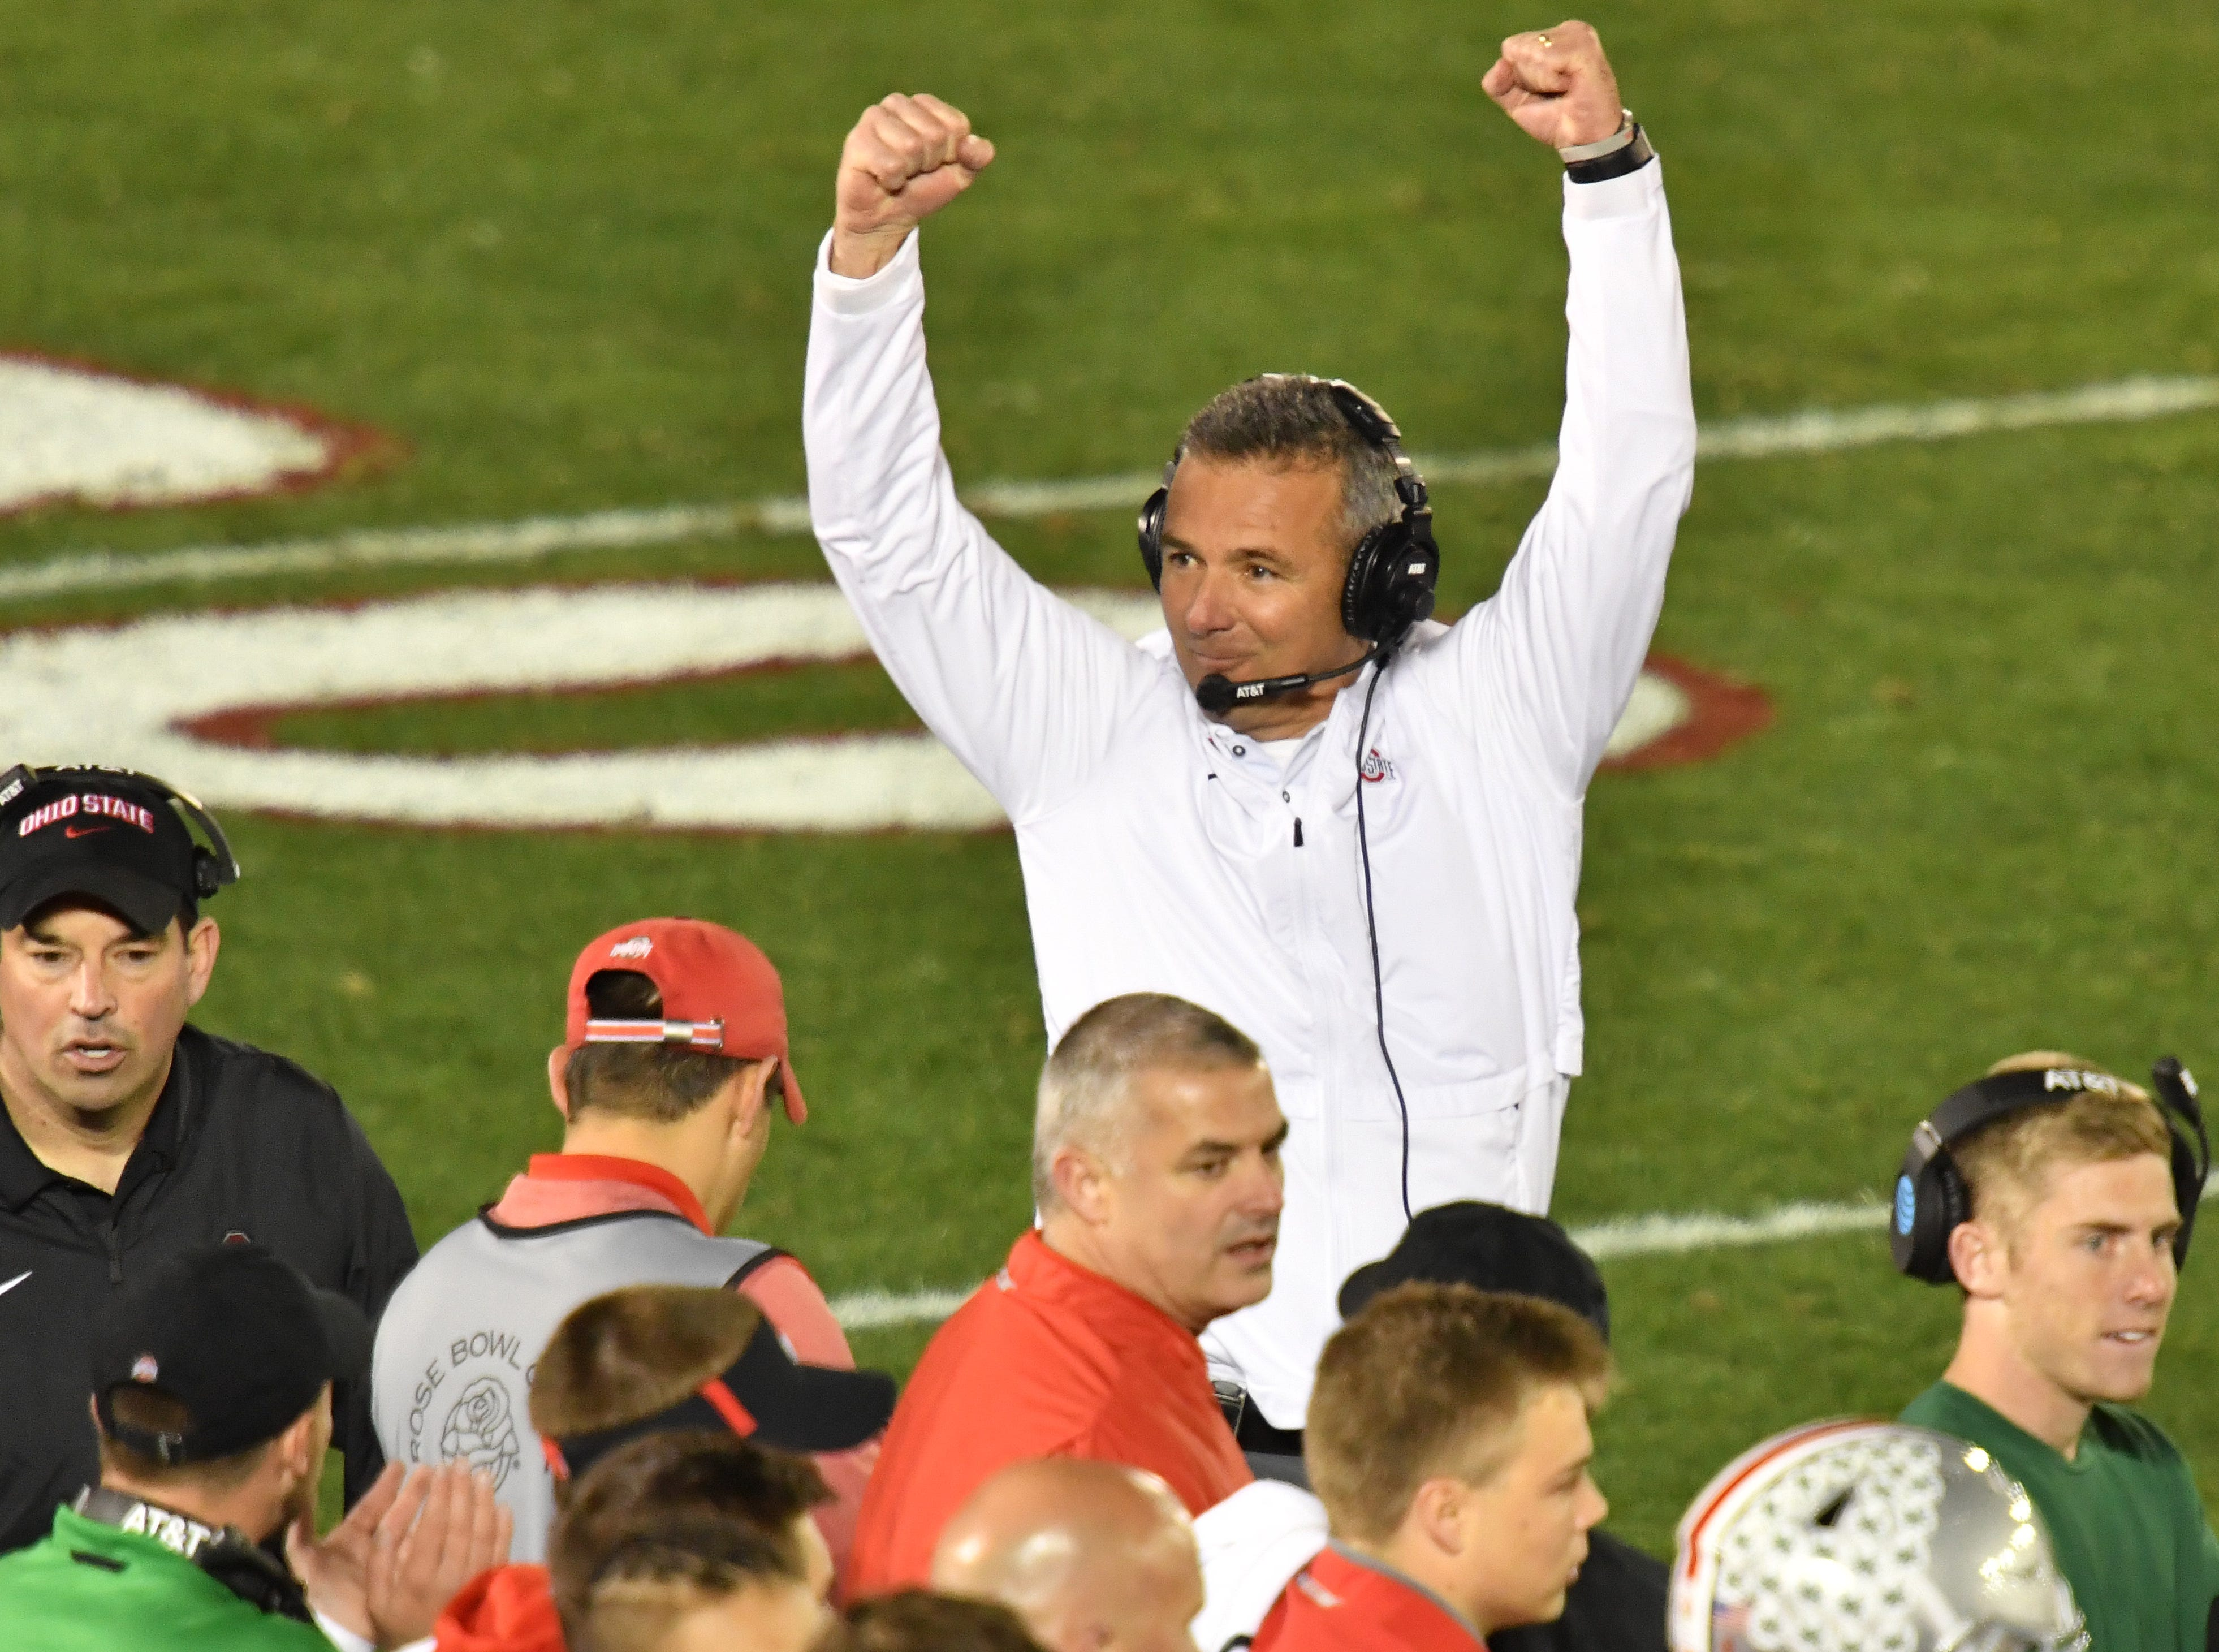 Ohio State Buckeyes head coach Urban Meyer celebrates the win over the Washington Huskies in the Rose Bowl.